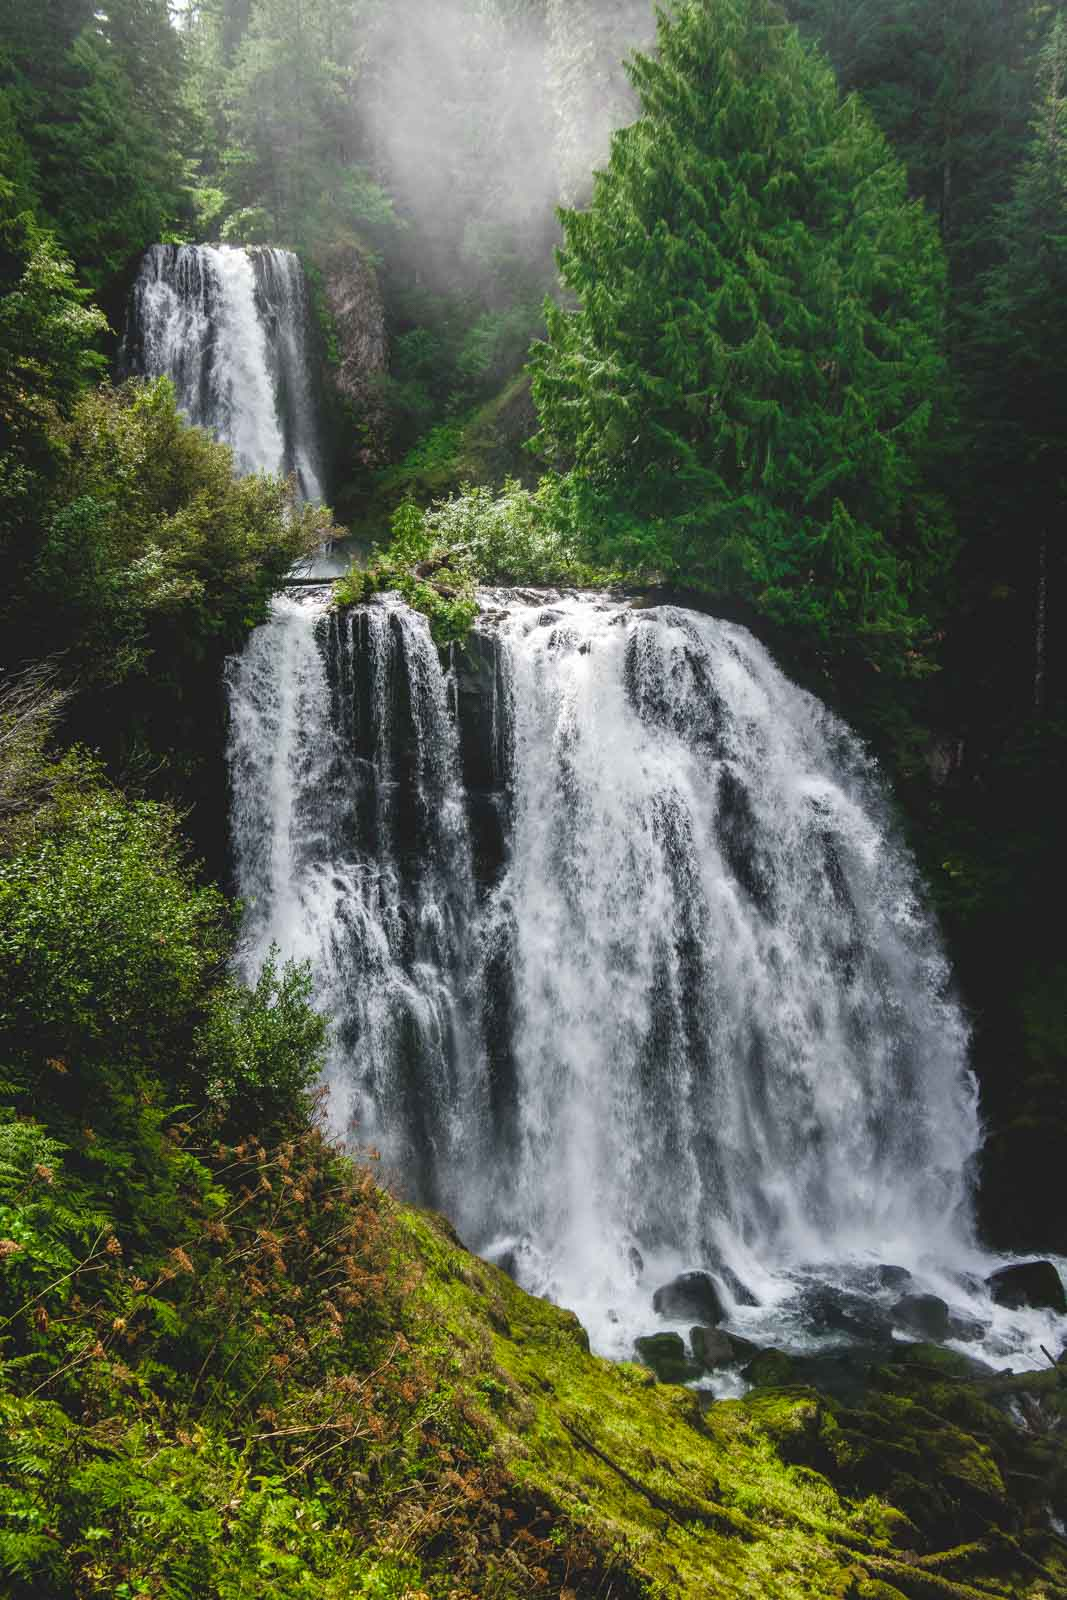 Marion Falls is a Bend, Oregon waterfall that's worth visiting.